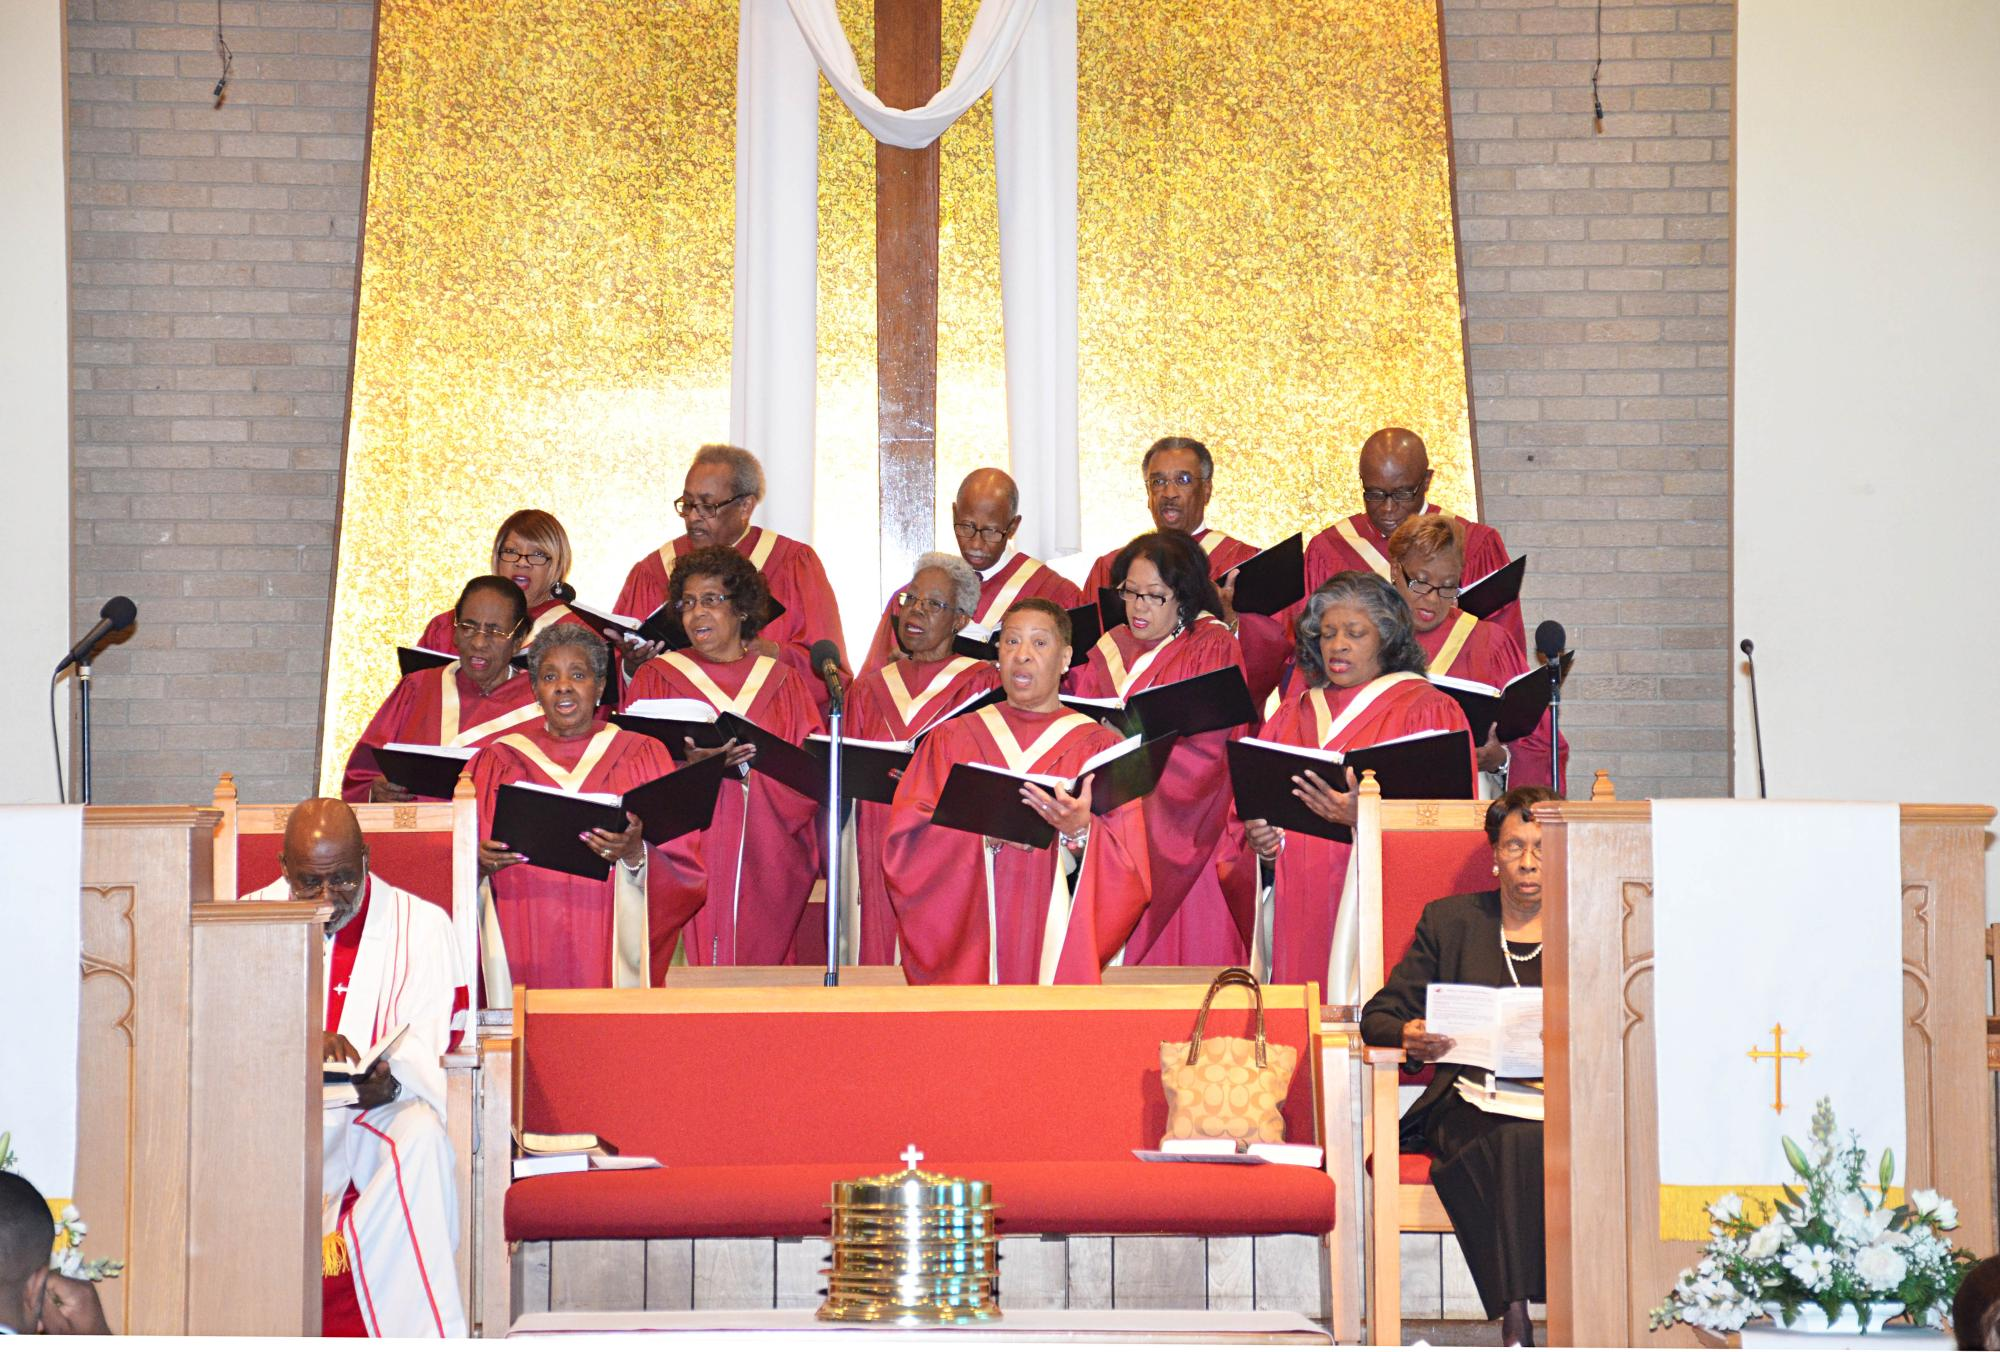 Chancel_Choir_5.1.16.JPG